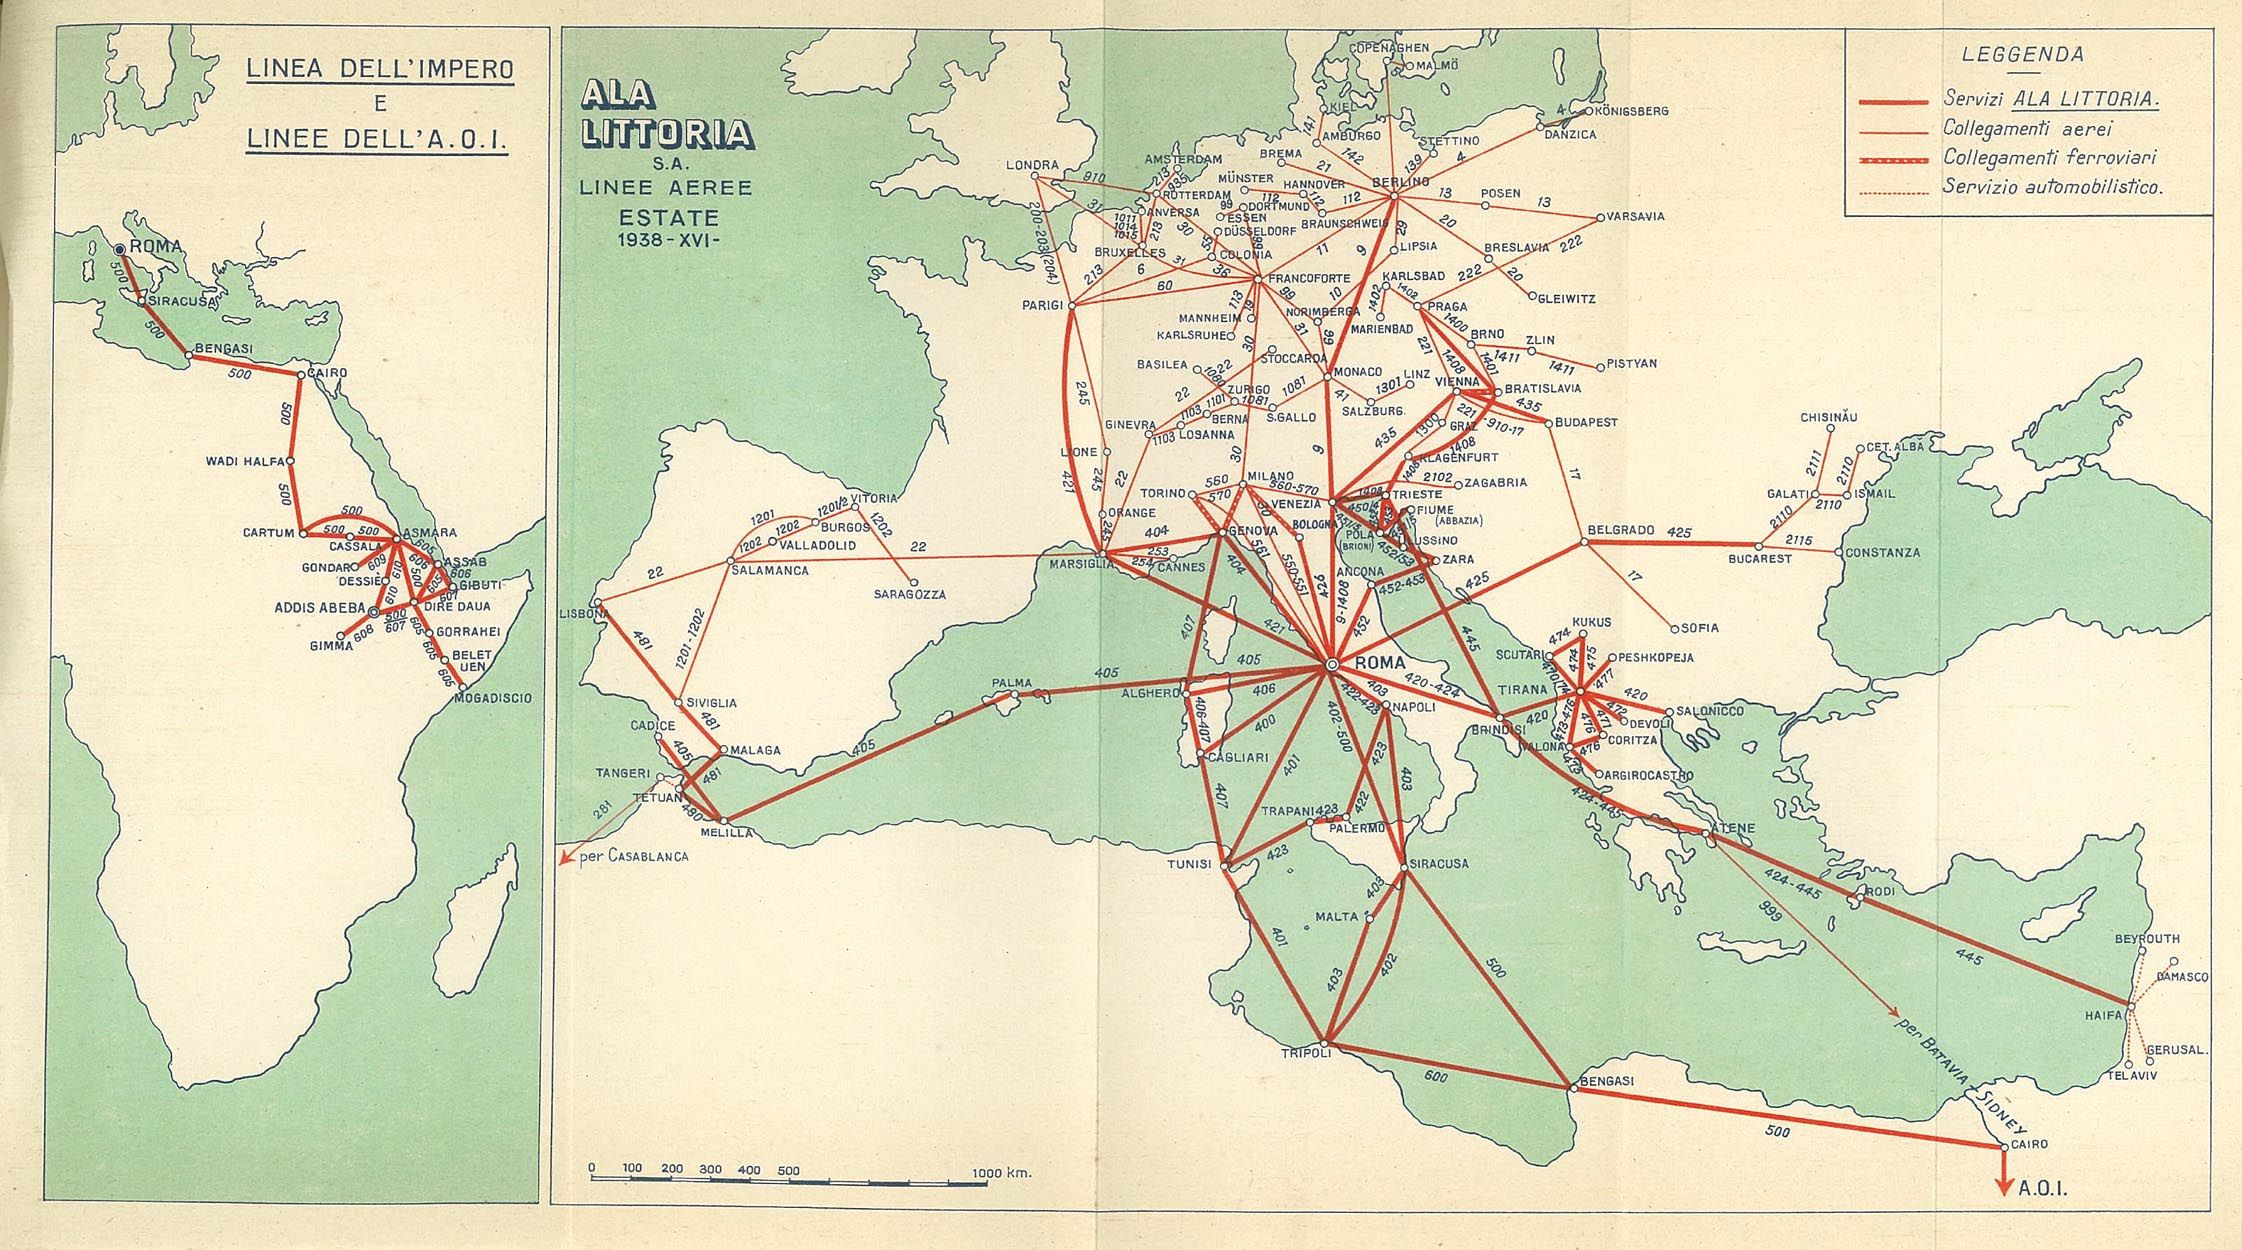 Castellucci italy world war 2 air base clickable map of ala castellucci italy world war 2 air base clickable map of ala littorias network showing gumiabroncs Gallery